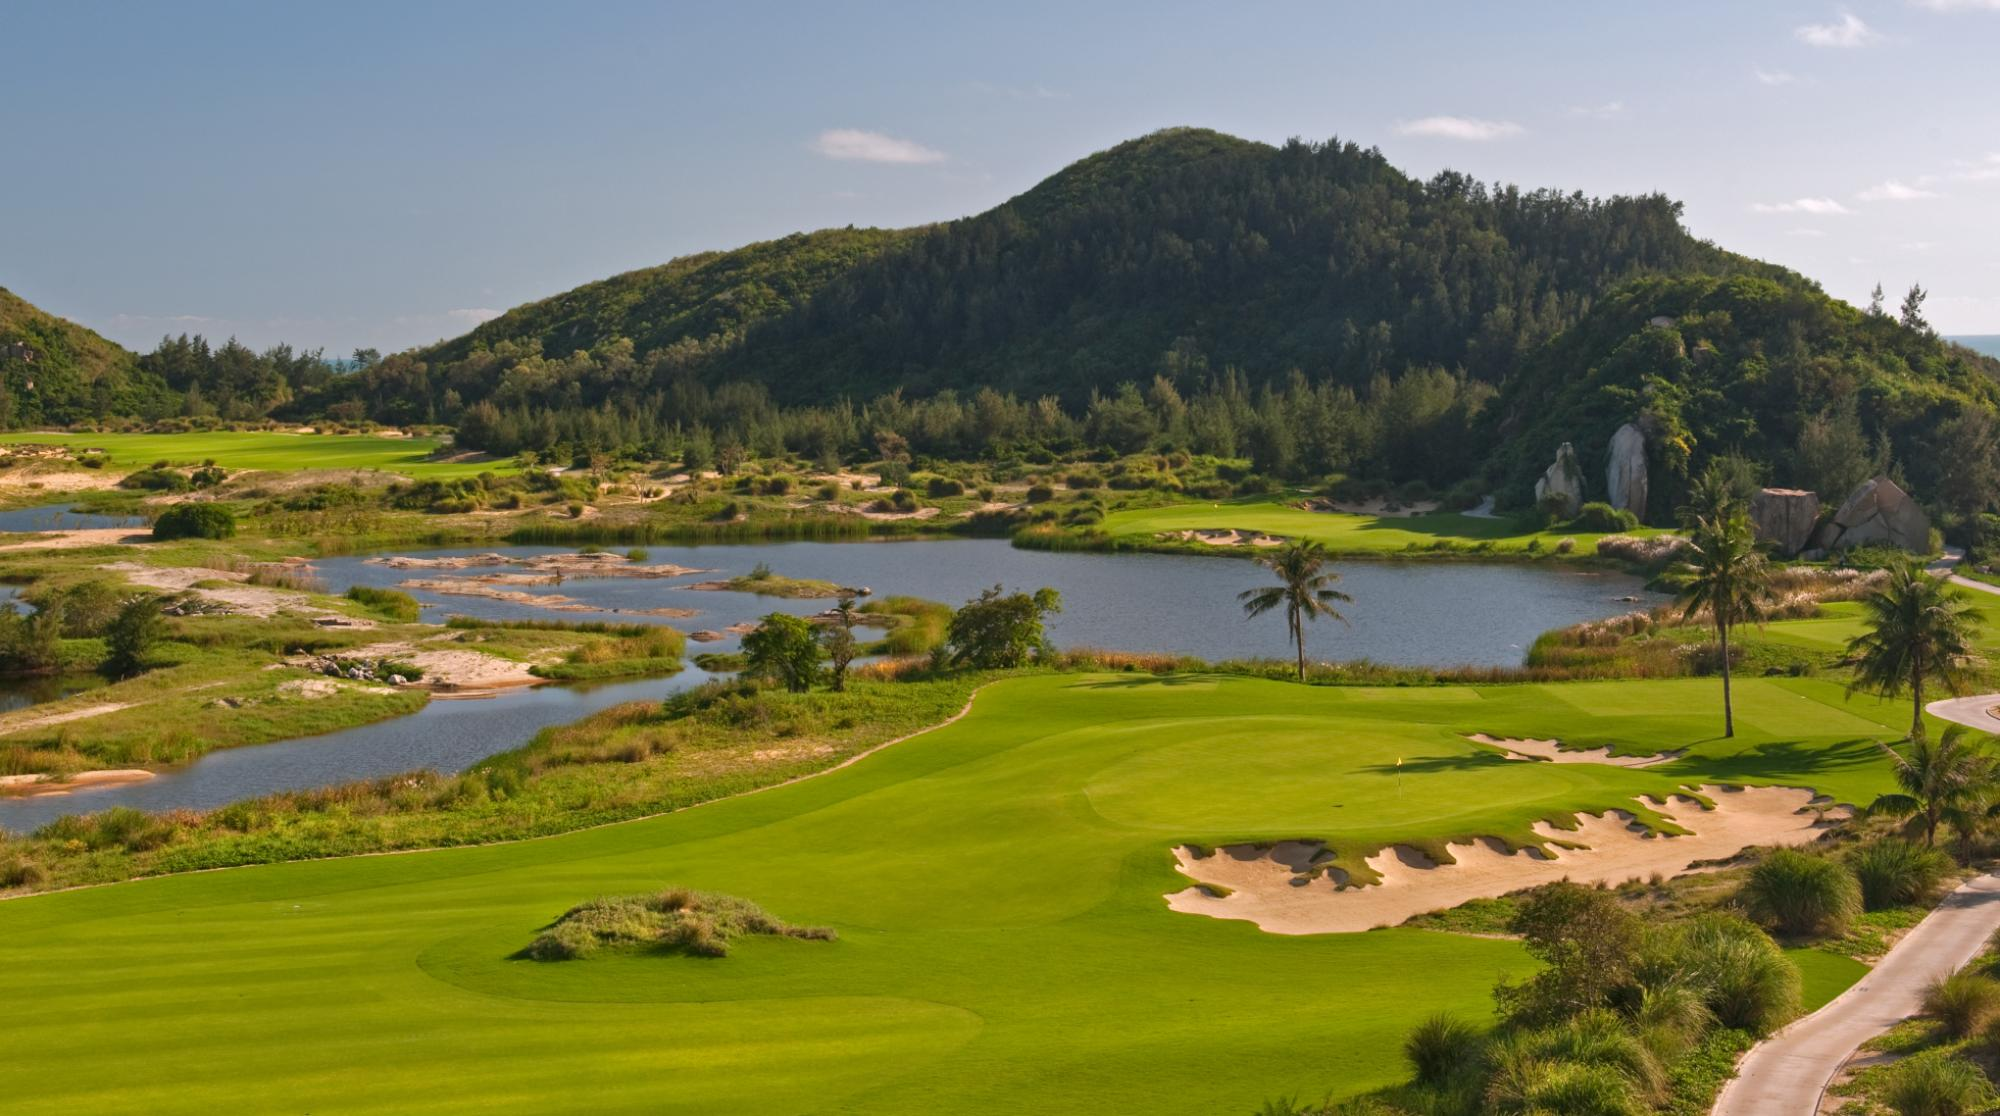 The Dunes at Shenzhou Peninsula has some of the most desirable golf course around China